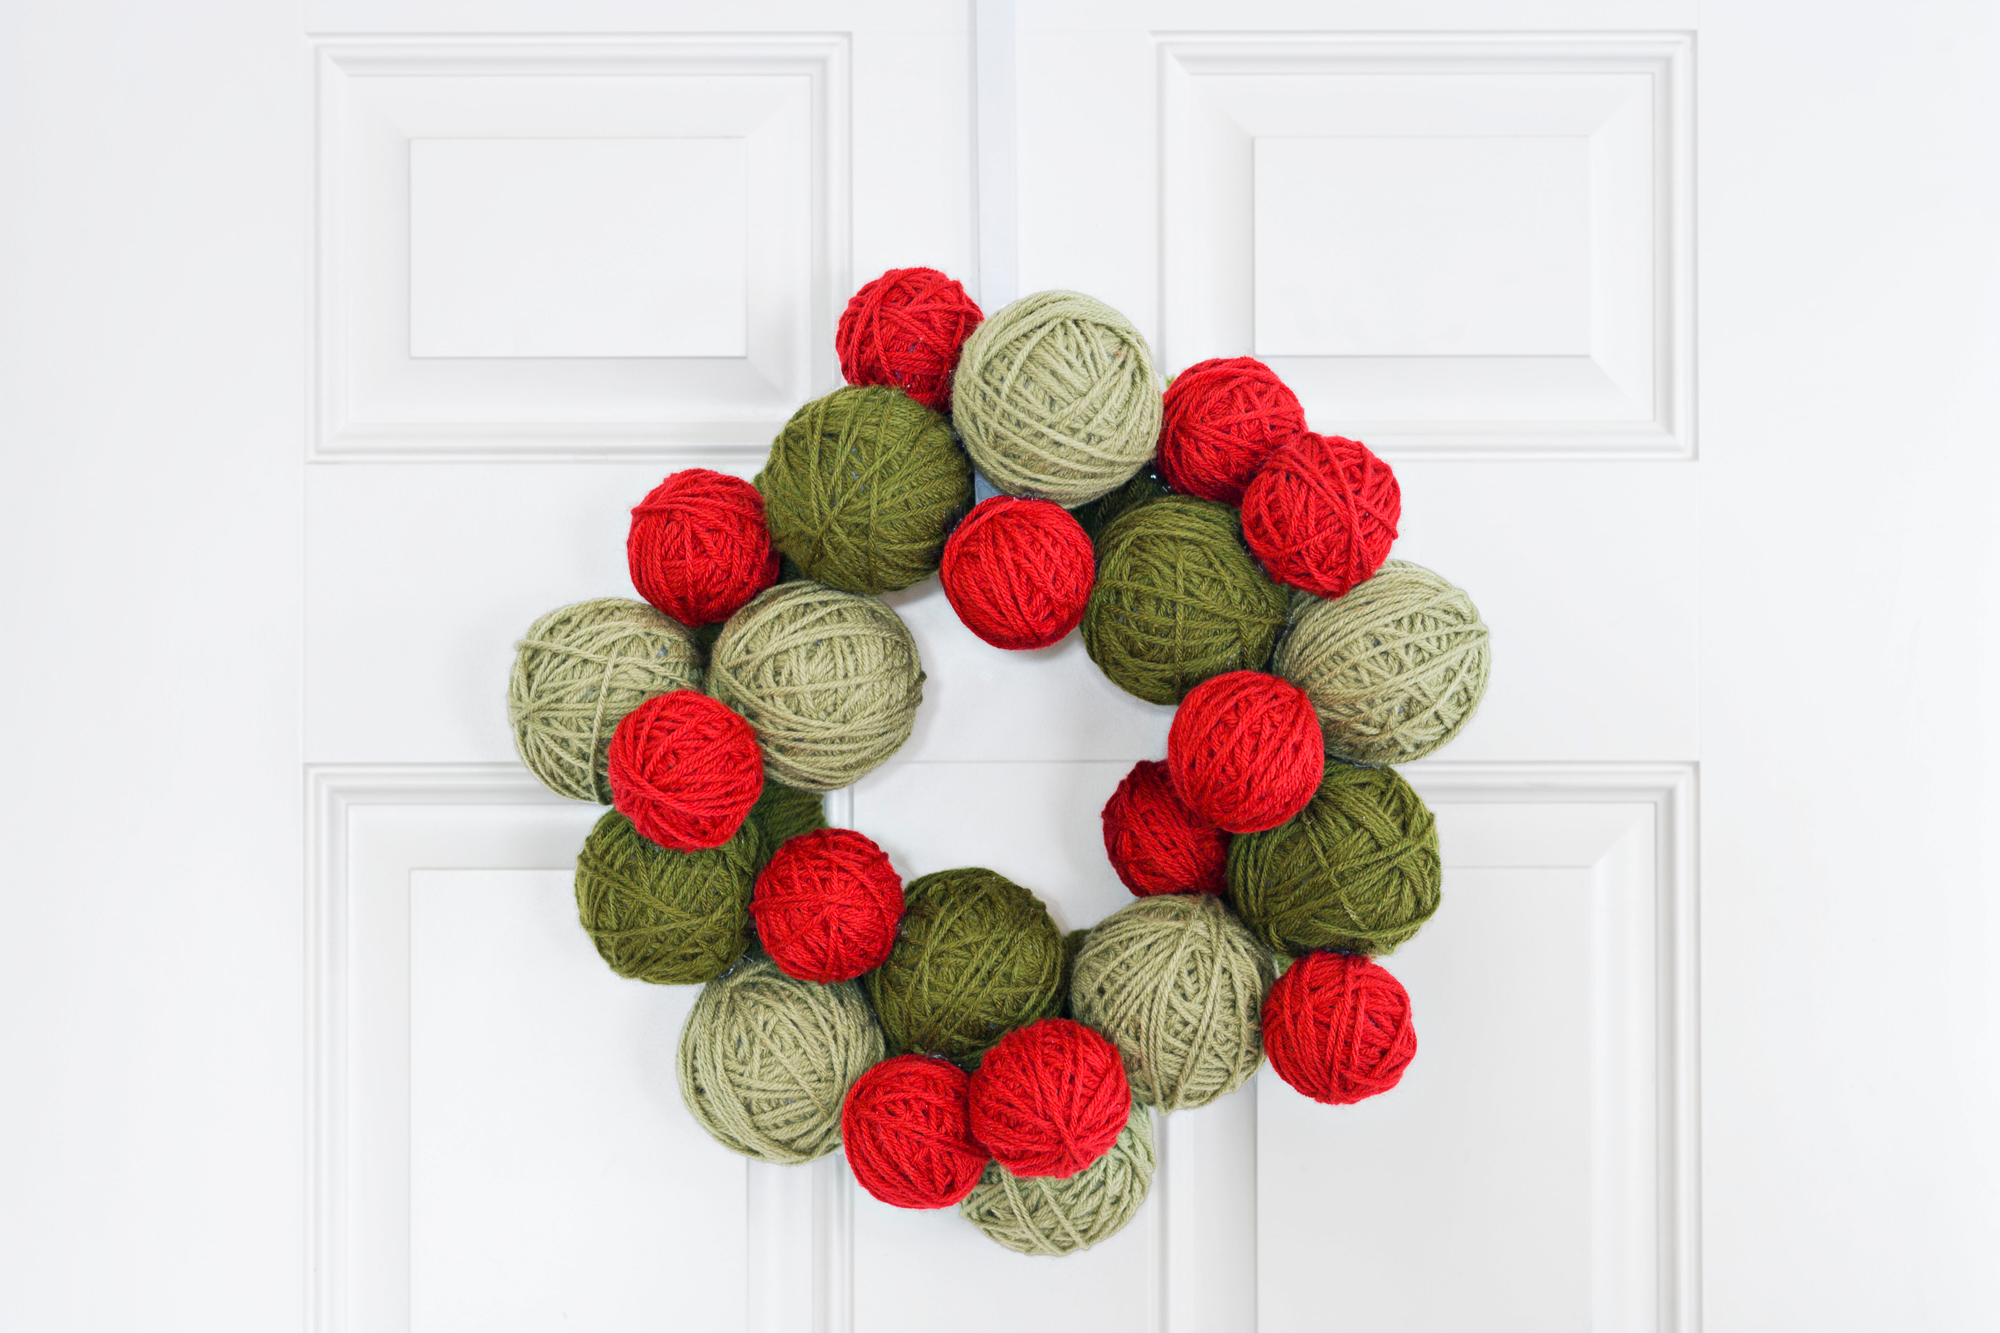 50 diy christmas wreath ideas how to make holiday wreaths crafts - Images For Christmas Decorations